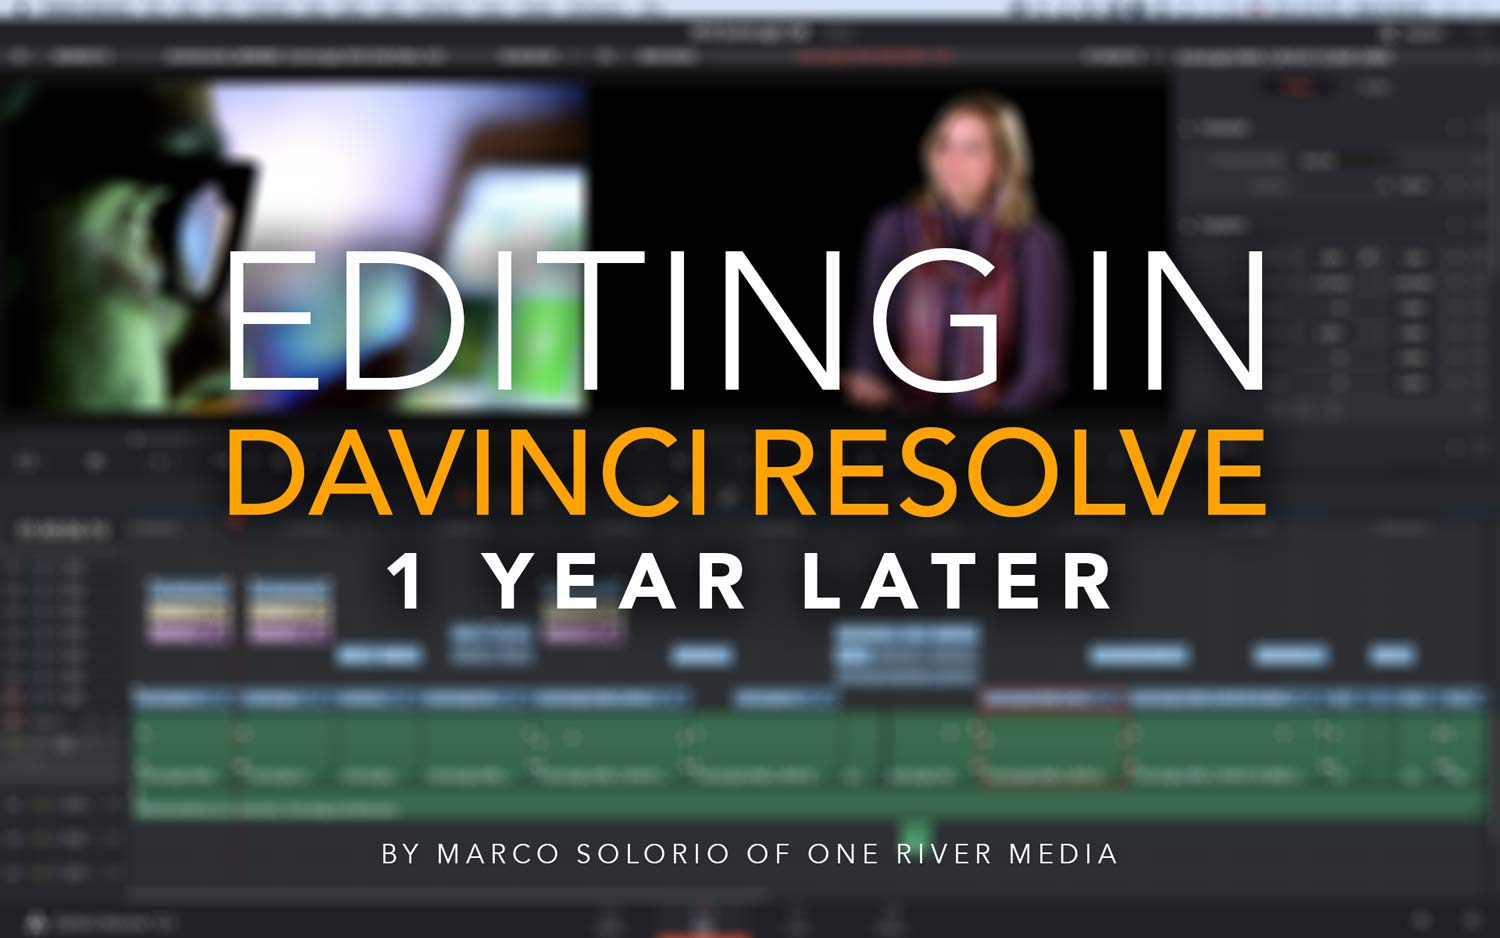 davinci-resolve-article-header-01